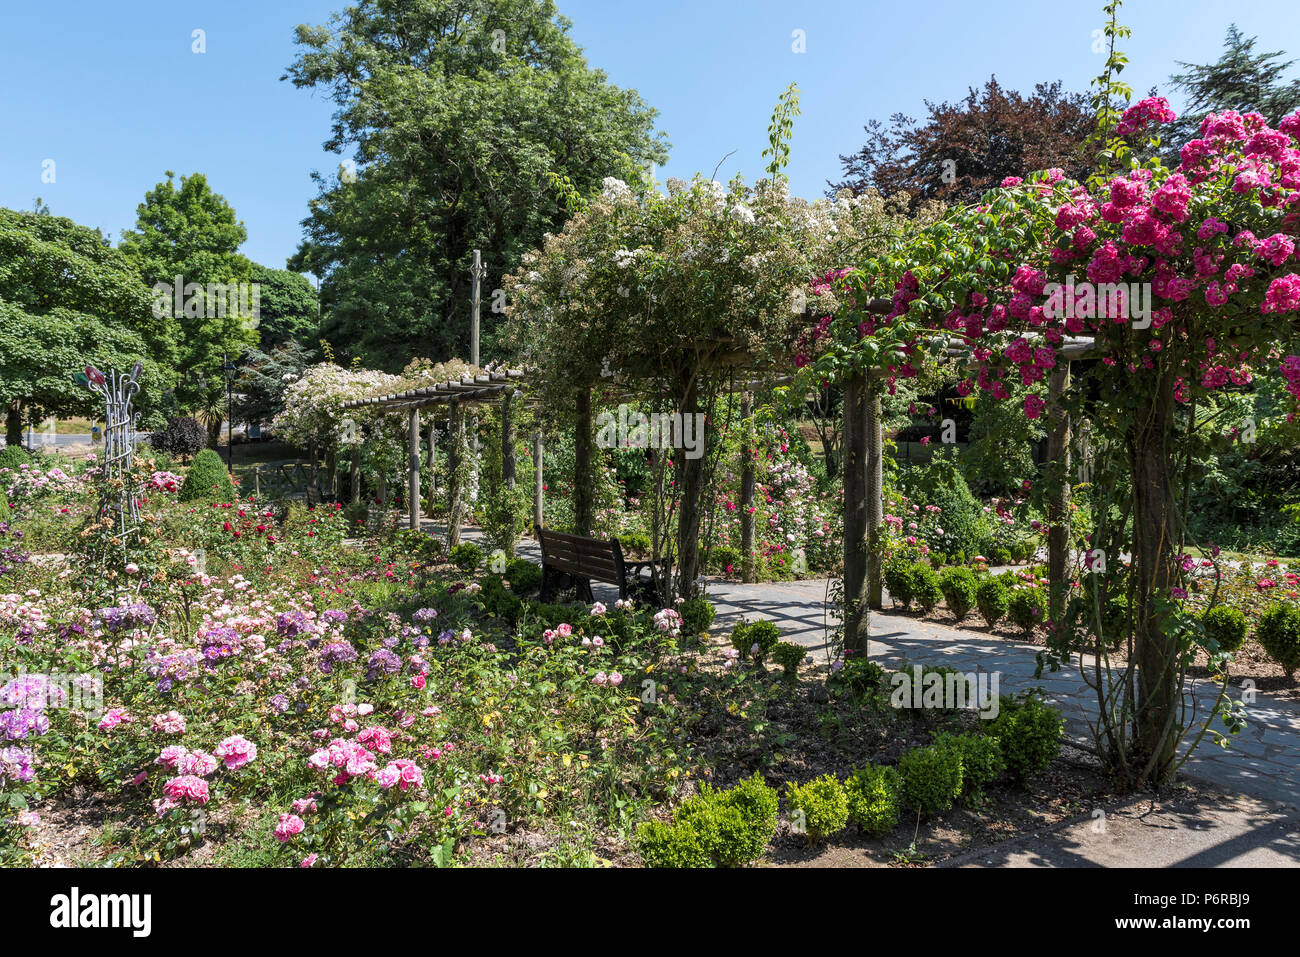 A pergola covered in climbing roses in the award winning Rose Garden in Trenance Park in Newquay in Cornwall. - Stock Image